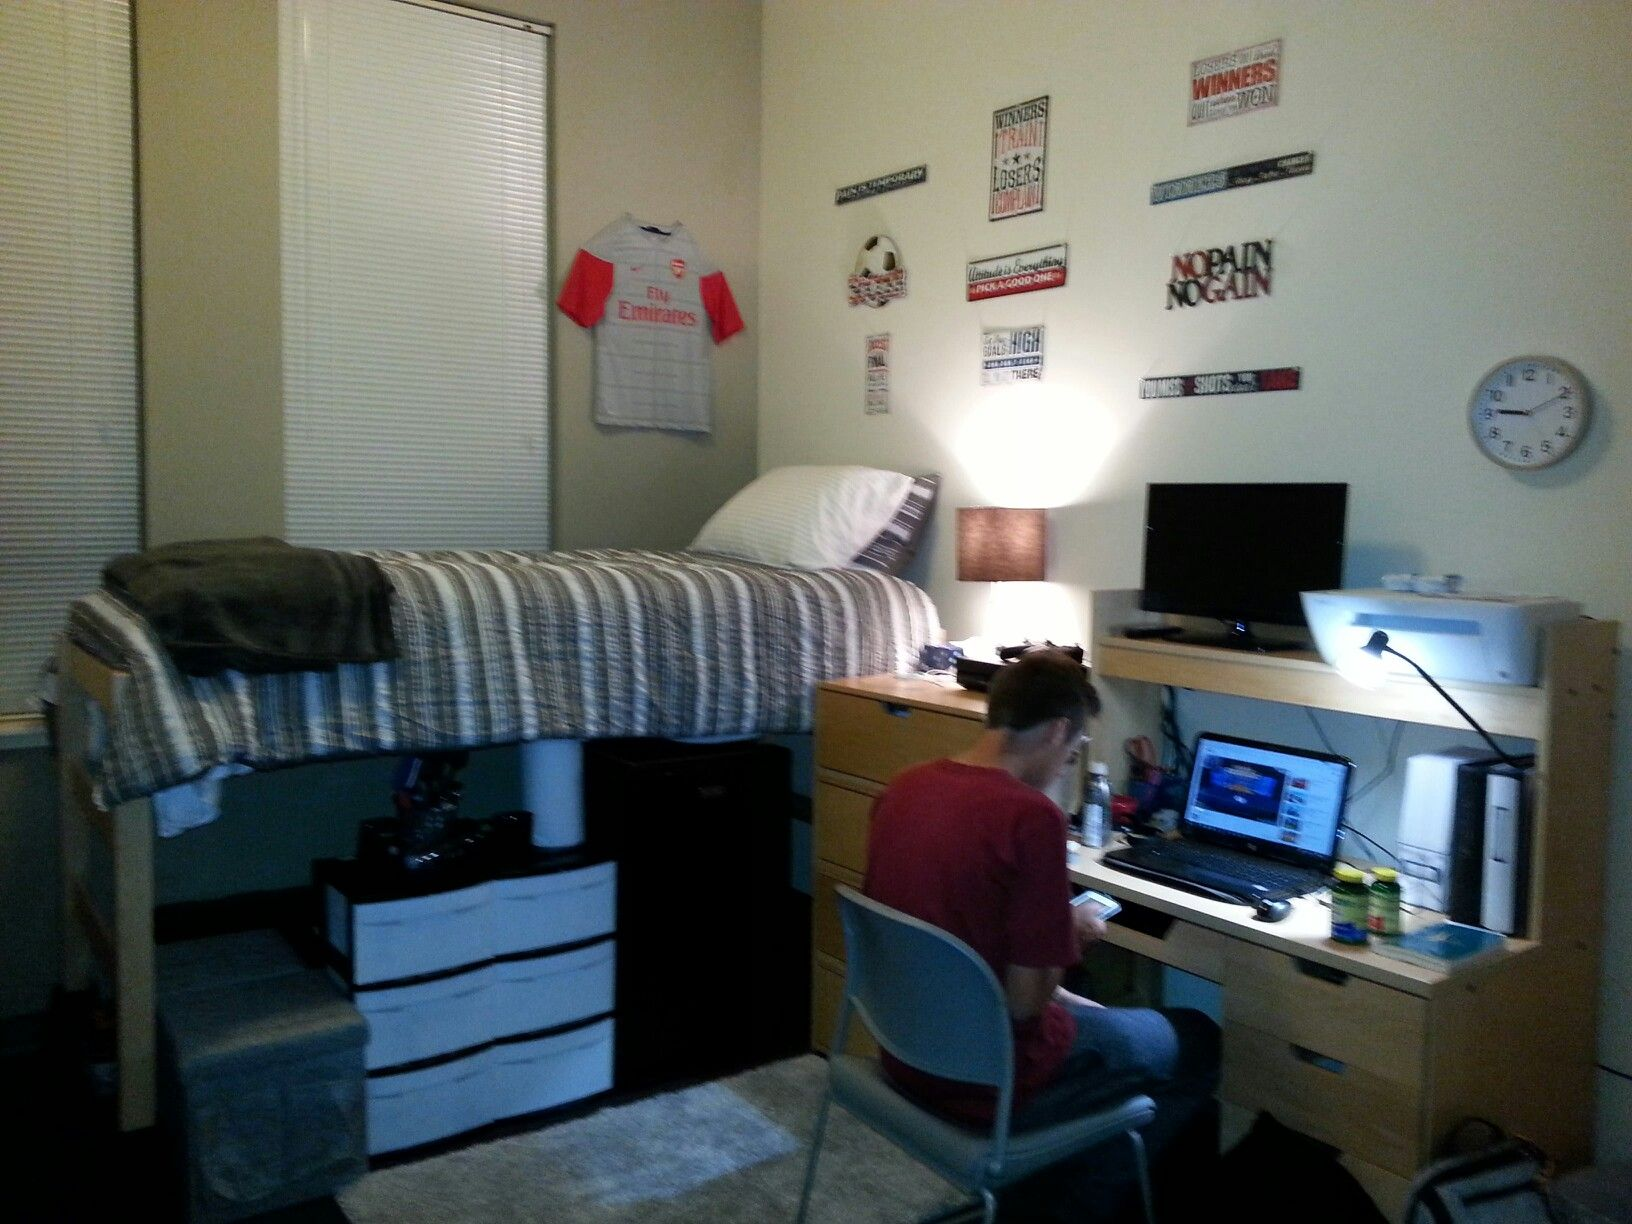 guy dorm rooms university of oregon dorm life dorm ideas forward guys